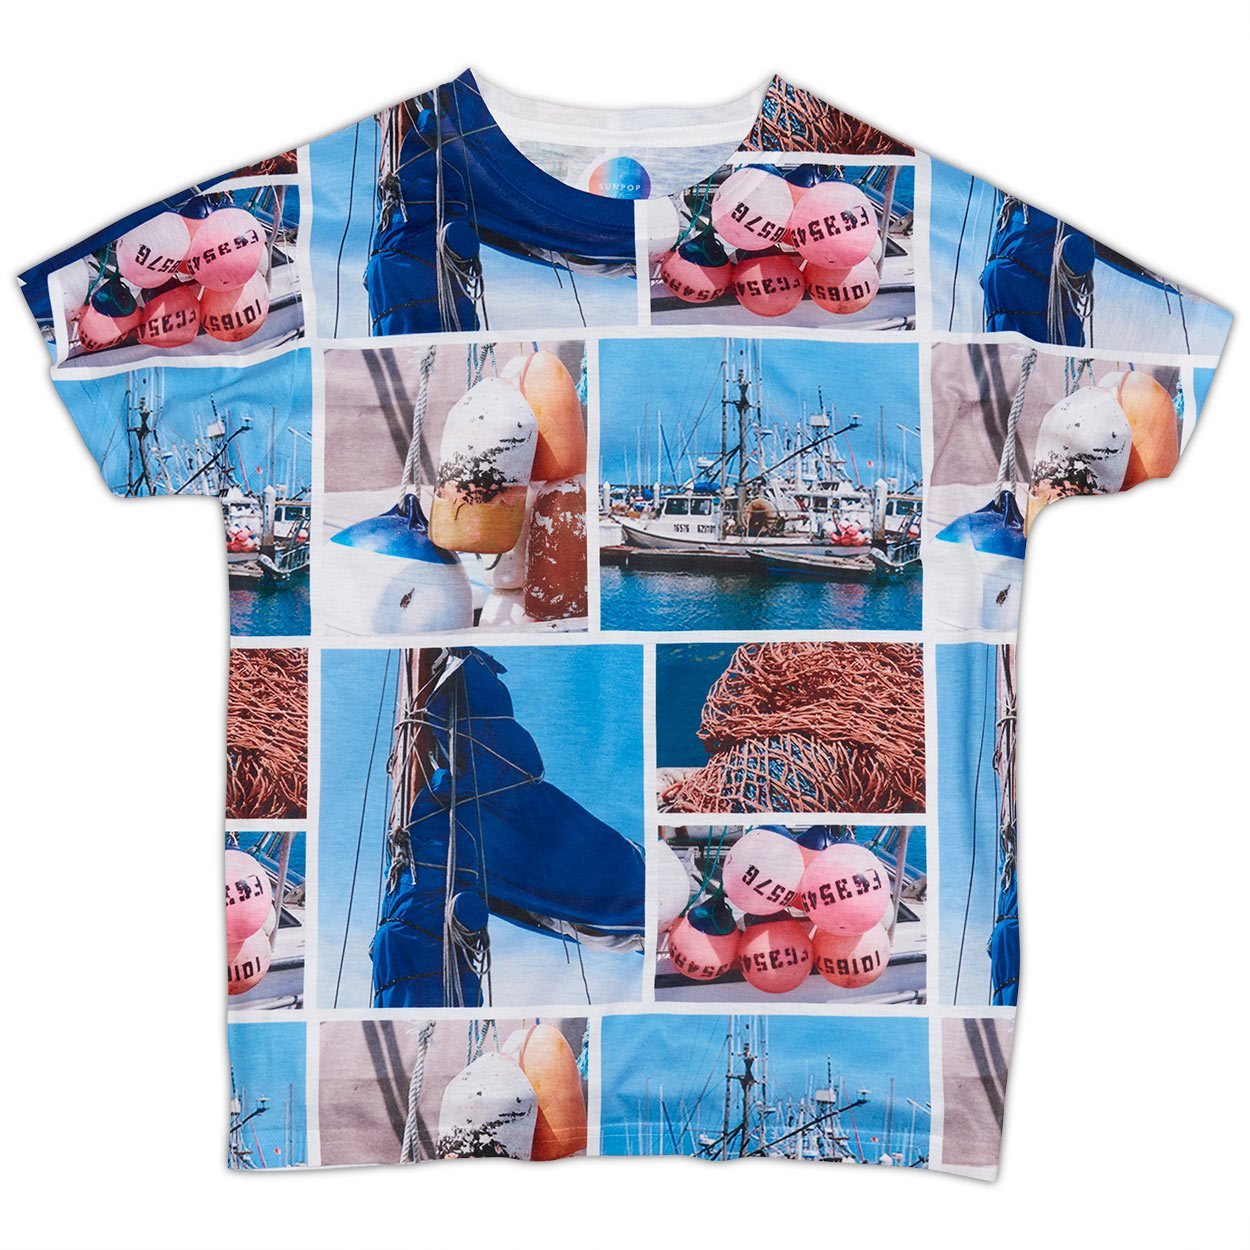 Boys Marina Photo Collage T-shirt